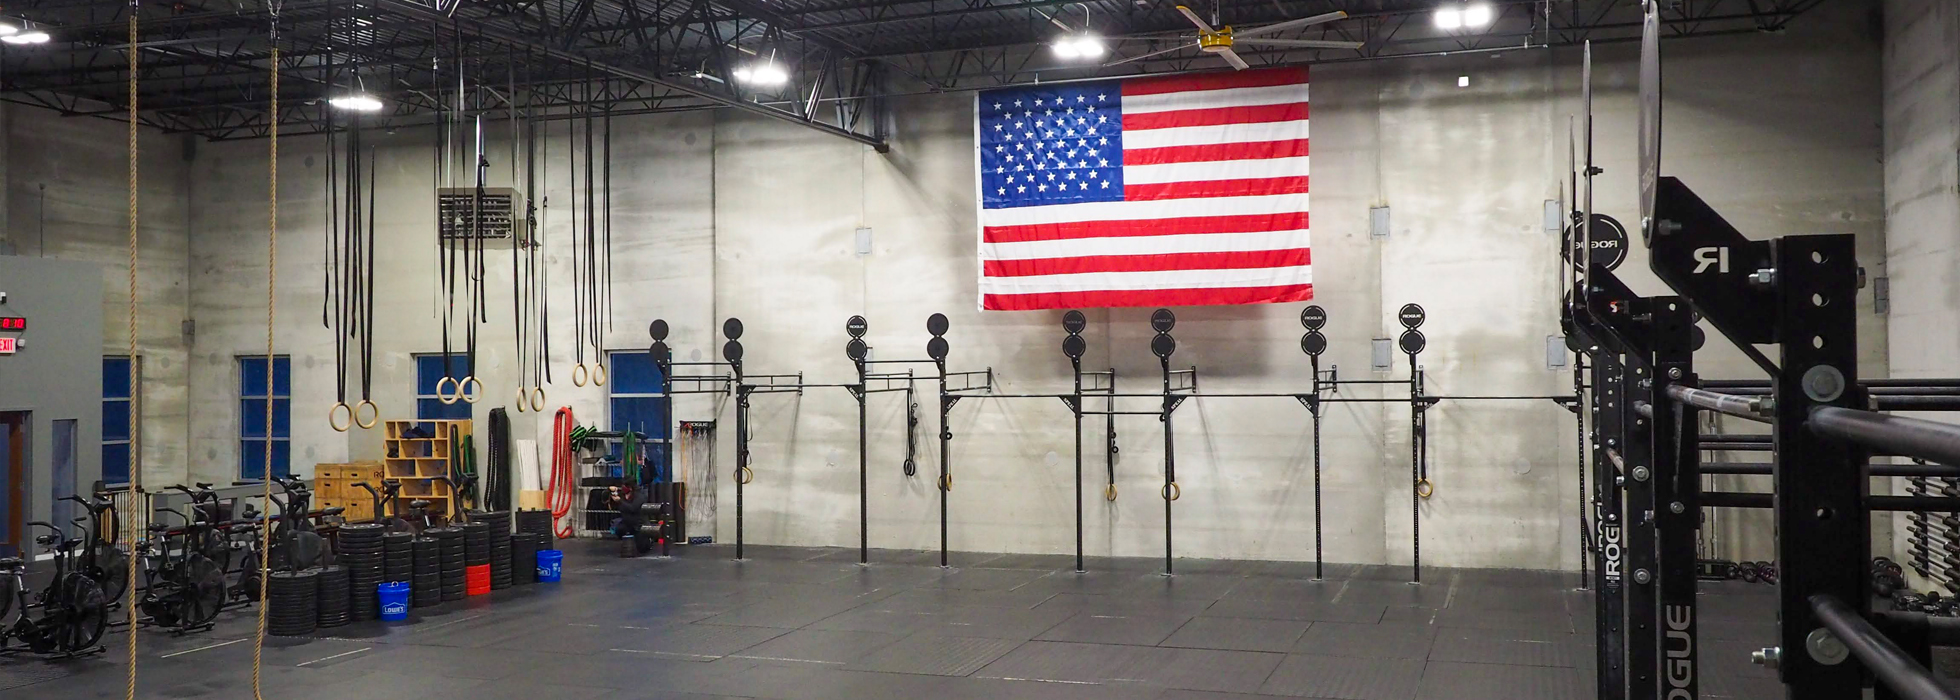 A Gym In Indianapolis IN That Can Help With Weight loss & Dieting, A Gym near Zionsville IN That Can Help With Weight loss & Dieting, A Gym near Carmel IN That Can Help With Weight loss & Dieting, A Gym near Whitestown IN That Can Help With Weight loss & Dieting